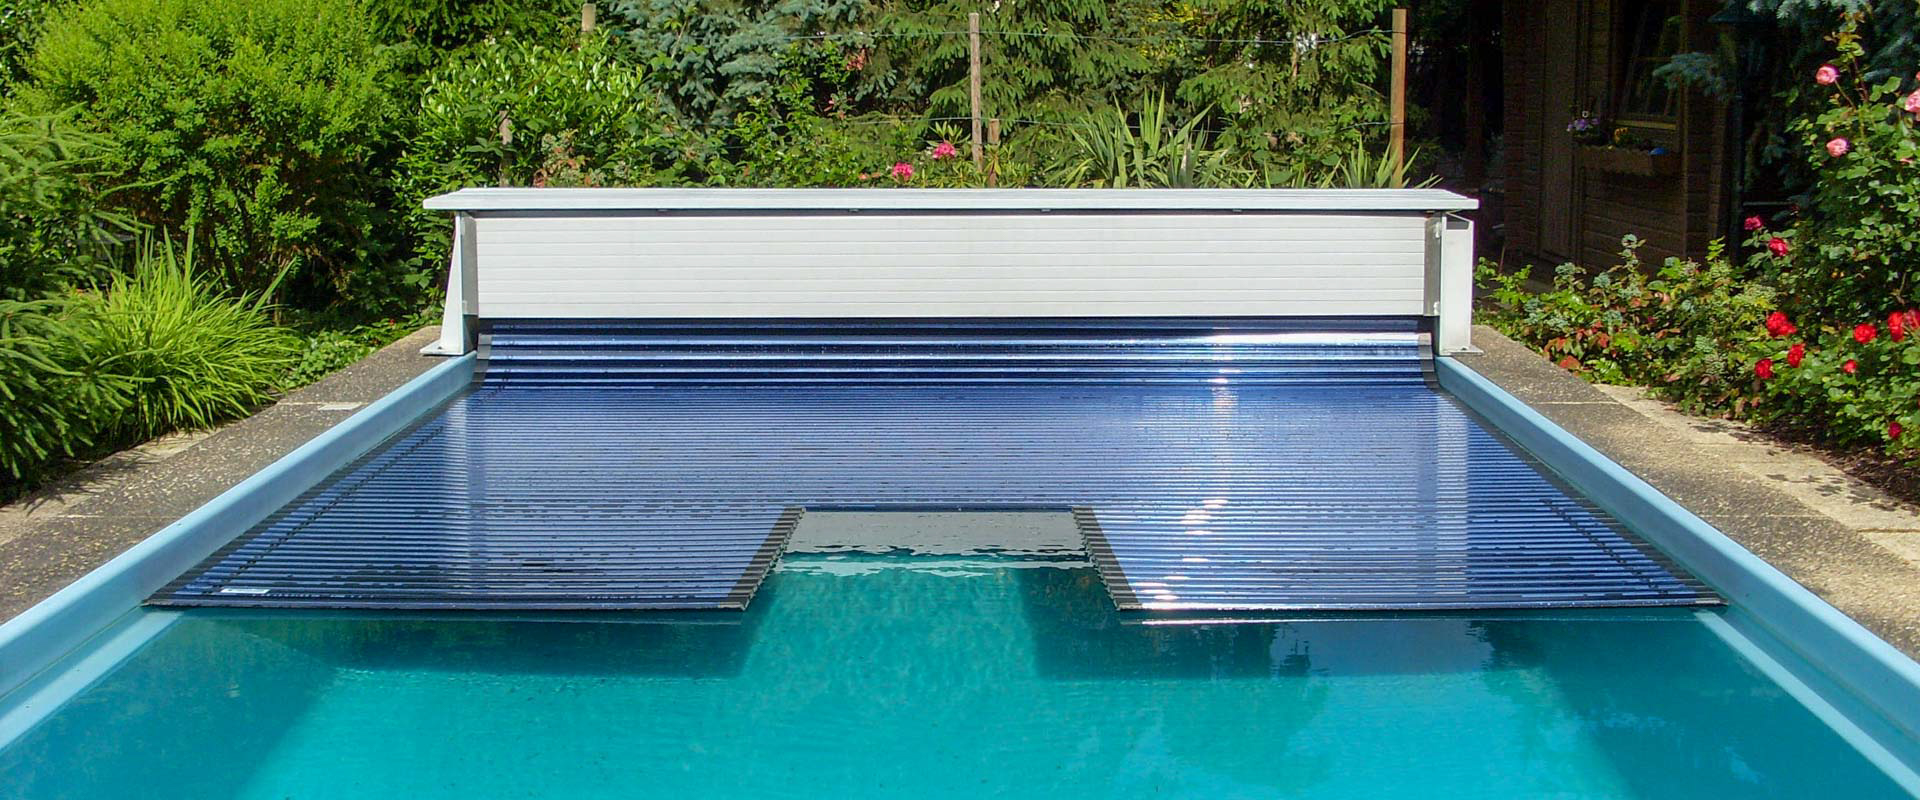 Automatic Rigid Pool Cover System Type Compact Grando Gmbh En